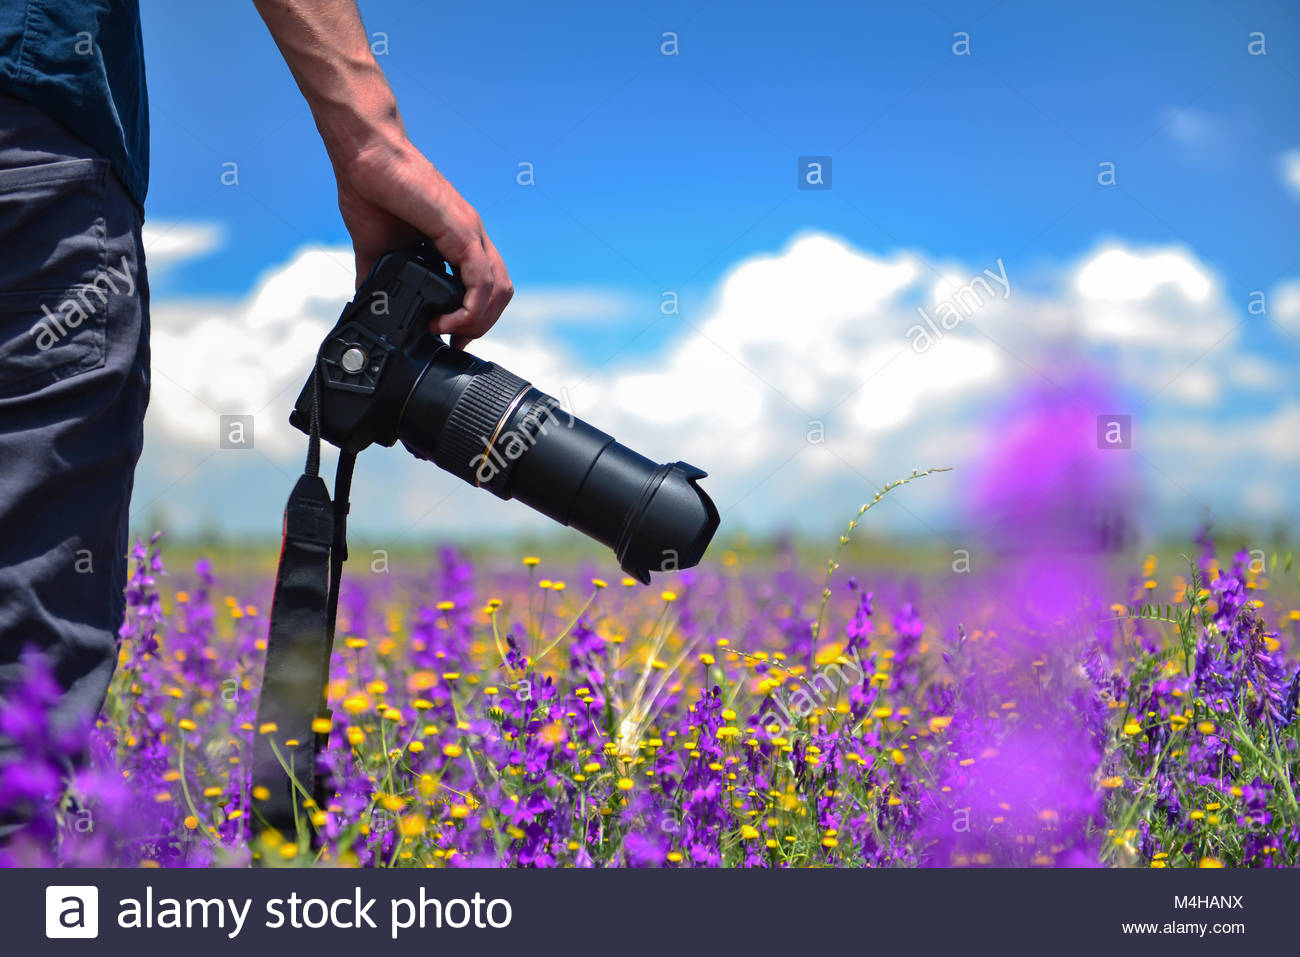 take pictures in nature - Stock Image